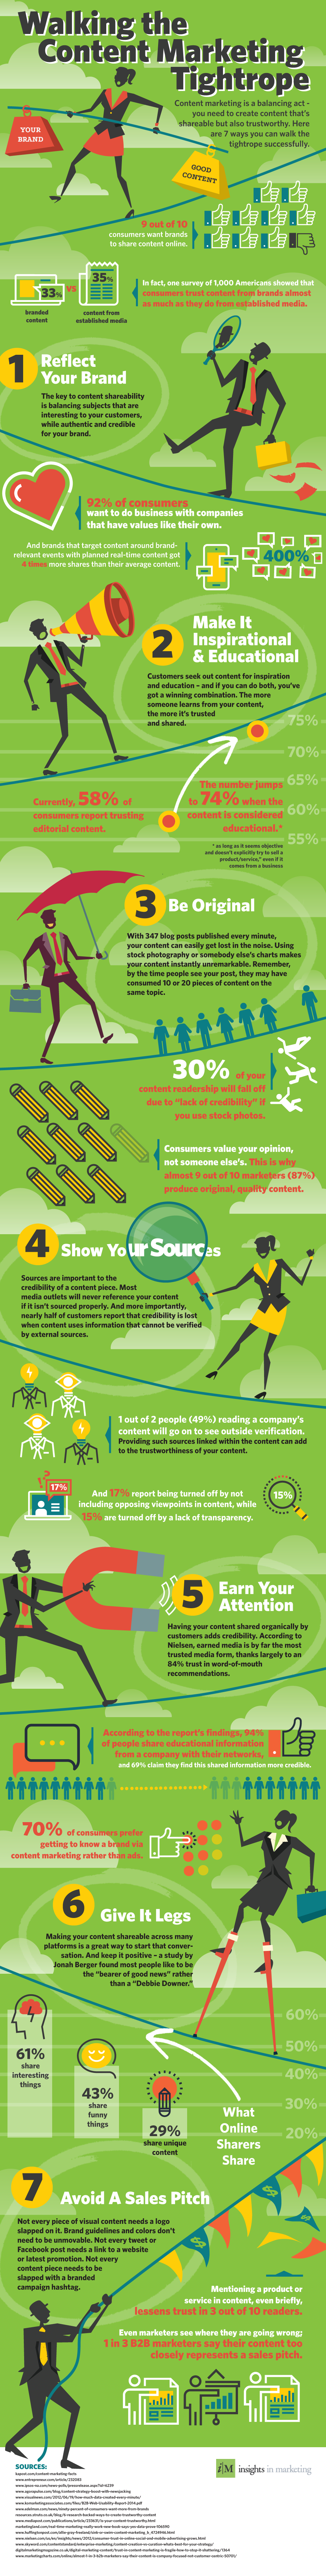 Walking the Content Marketing Tightrope #infographic